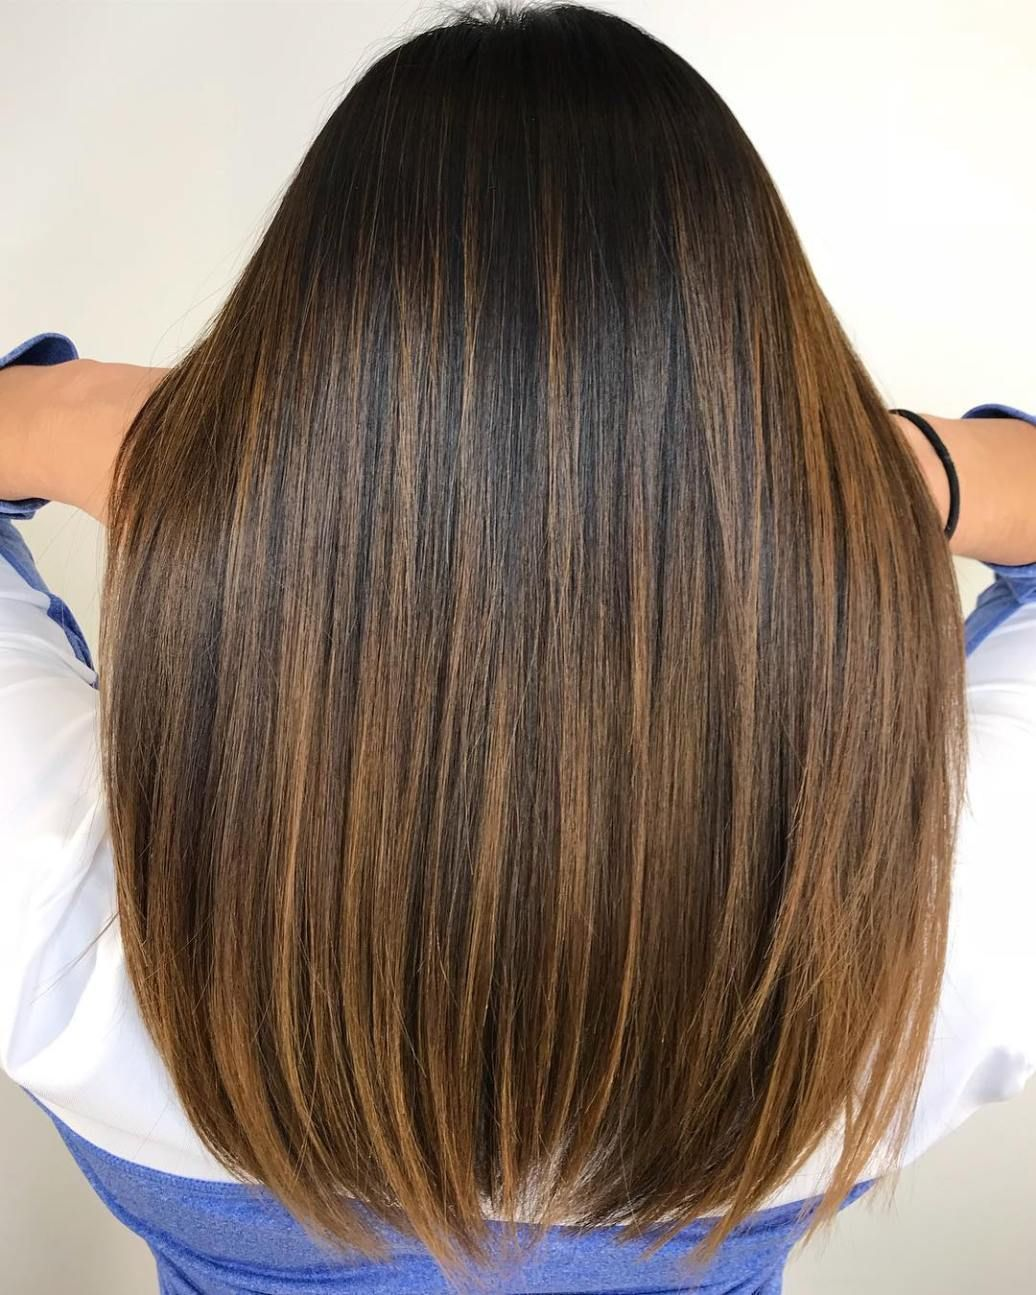 60 Looks With Caramel Highlights On Brown And Dark Brown Hair Caramel Hair Highlights Light Brown Hair Brown Ombre Hair